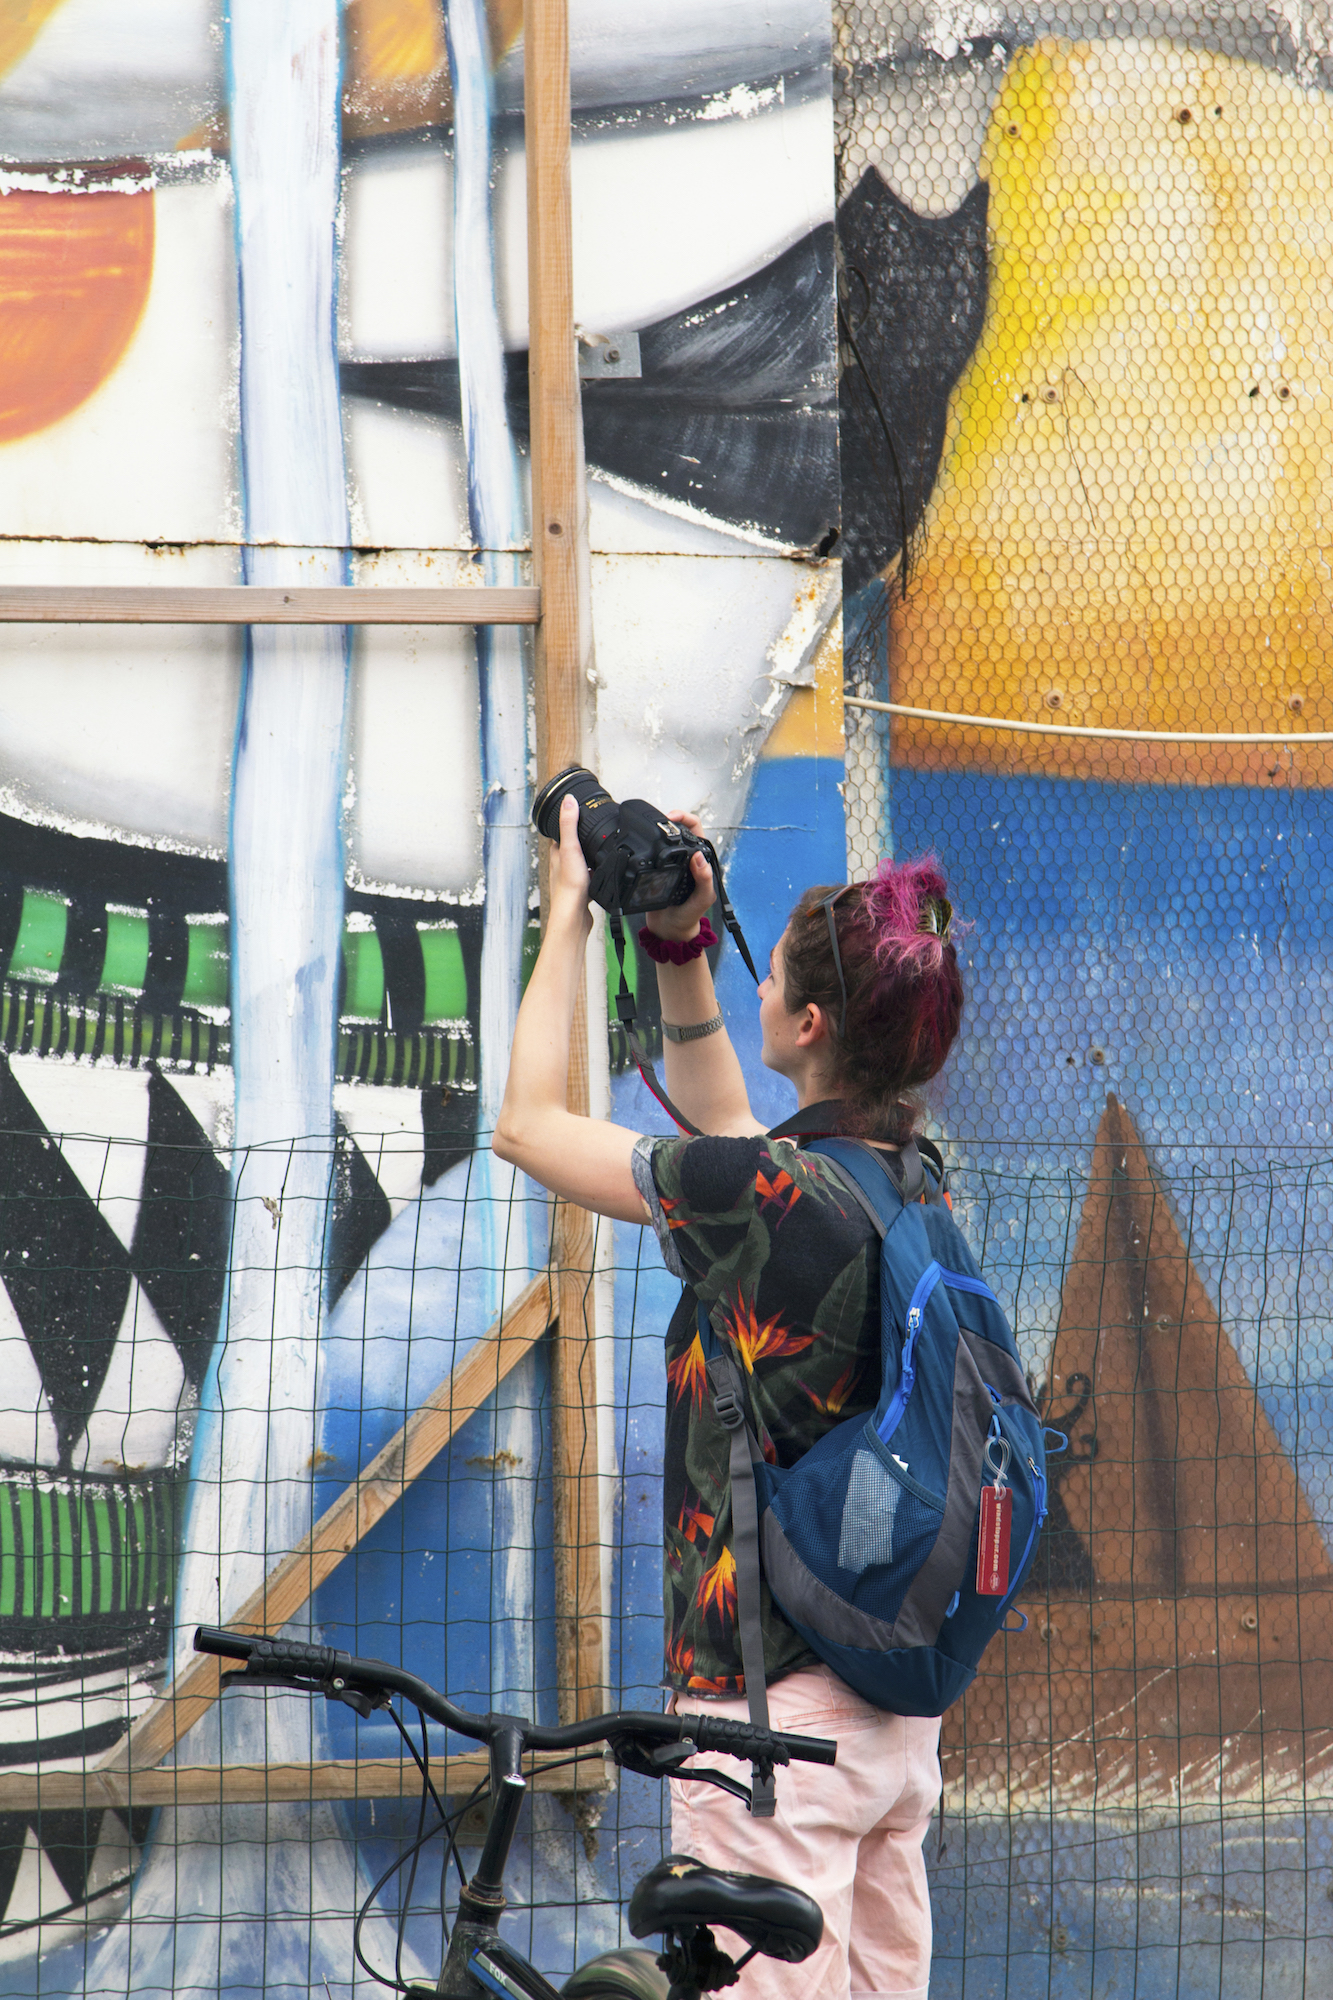 Geena Matuson photographing a wall mural in Tel Aviv-Yafo. See more #travel photography @geenamatuson #thegirlmirage at thegirlmirage.com.